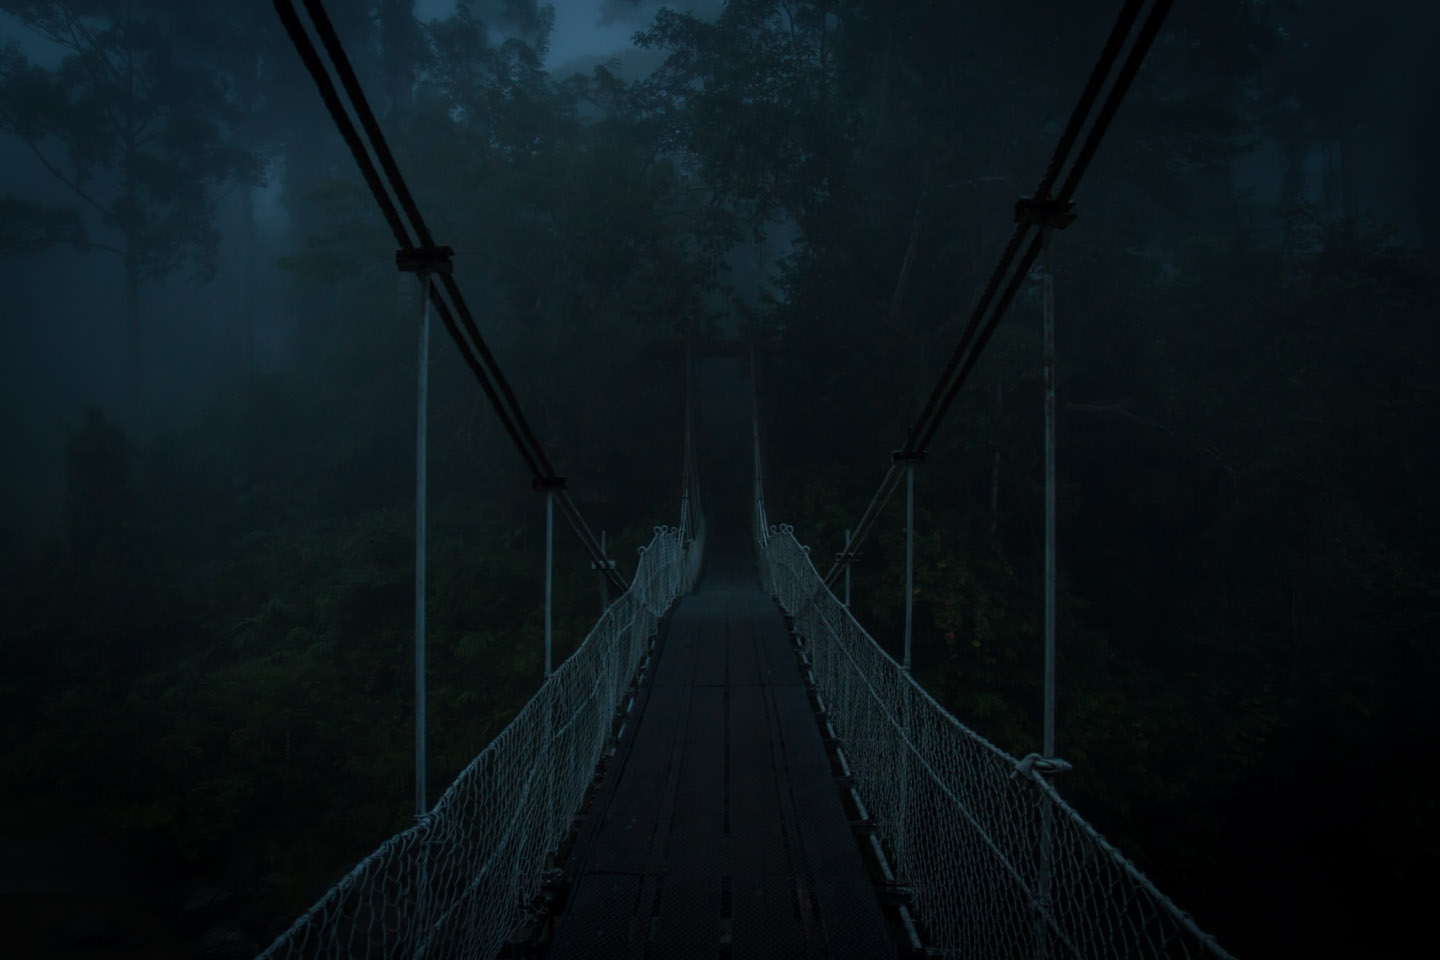 Suspension bridge Danum Valley Field Center Conservation Area Sabah Borneo Malaysia